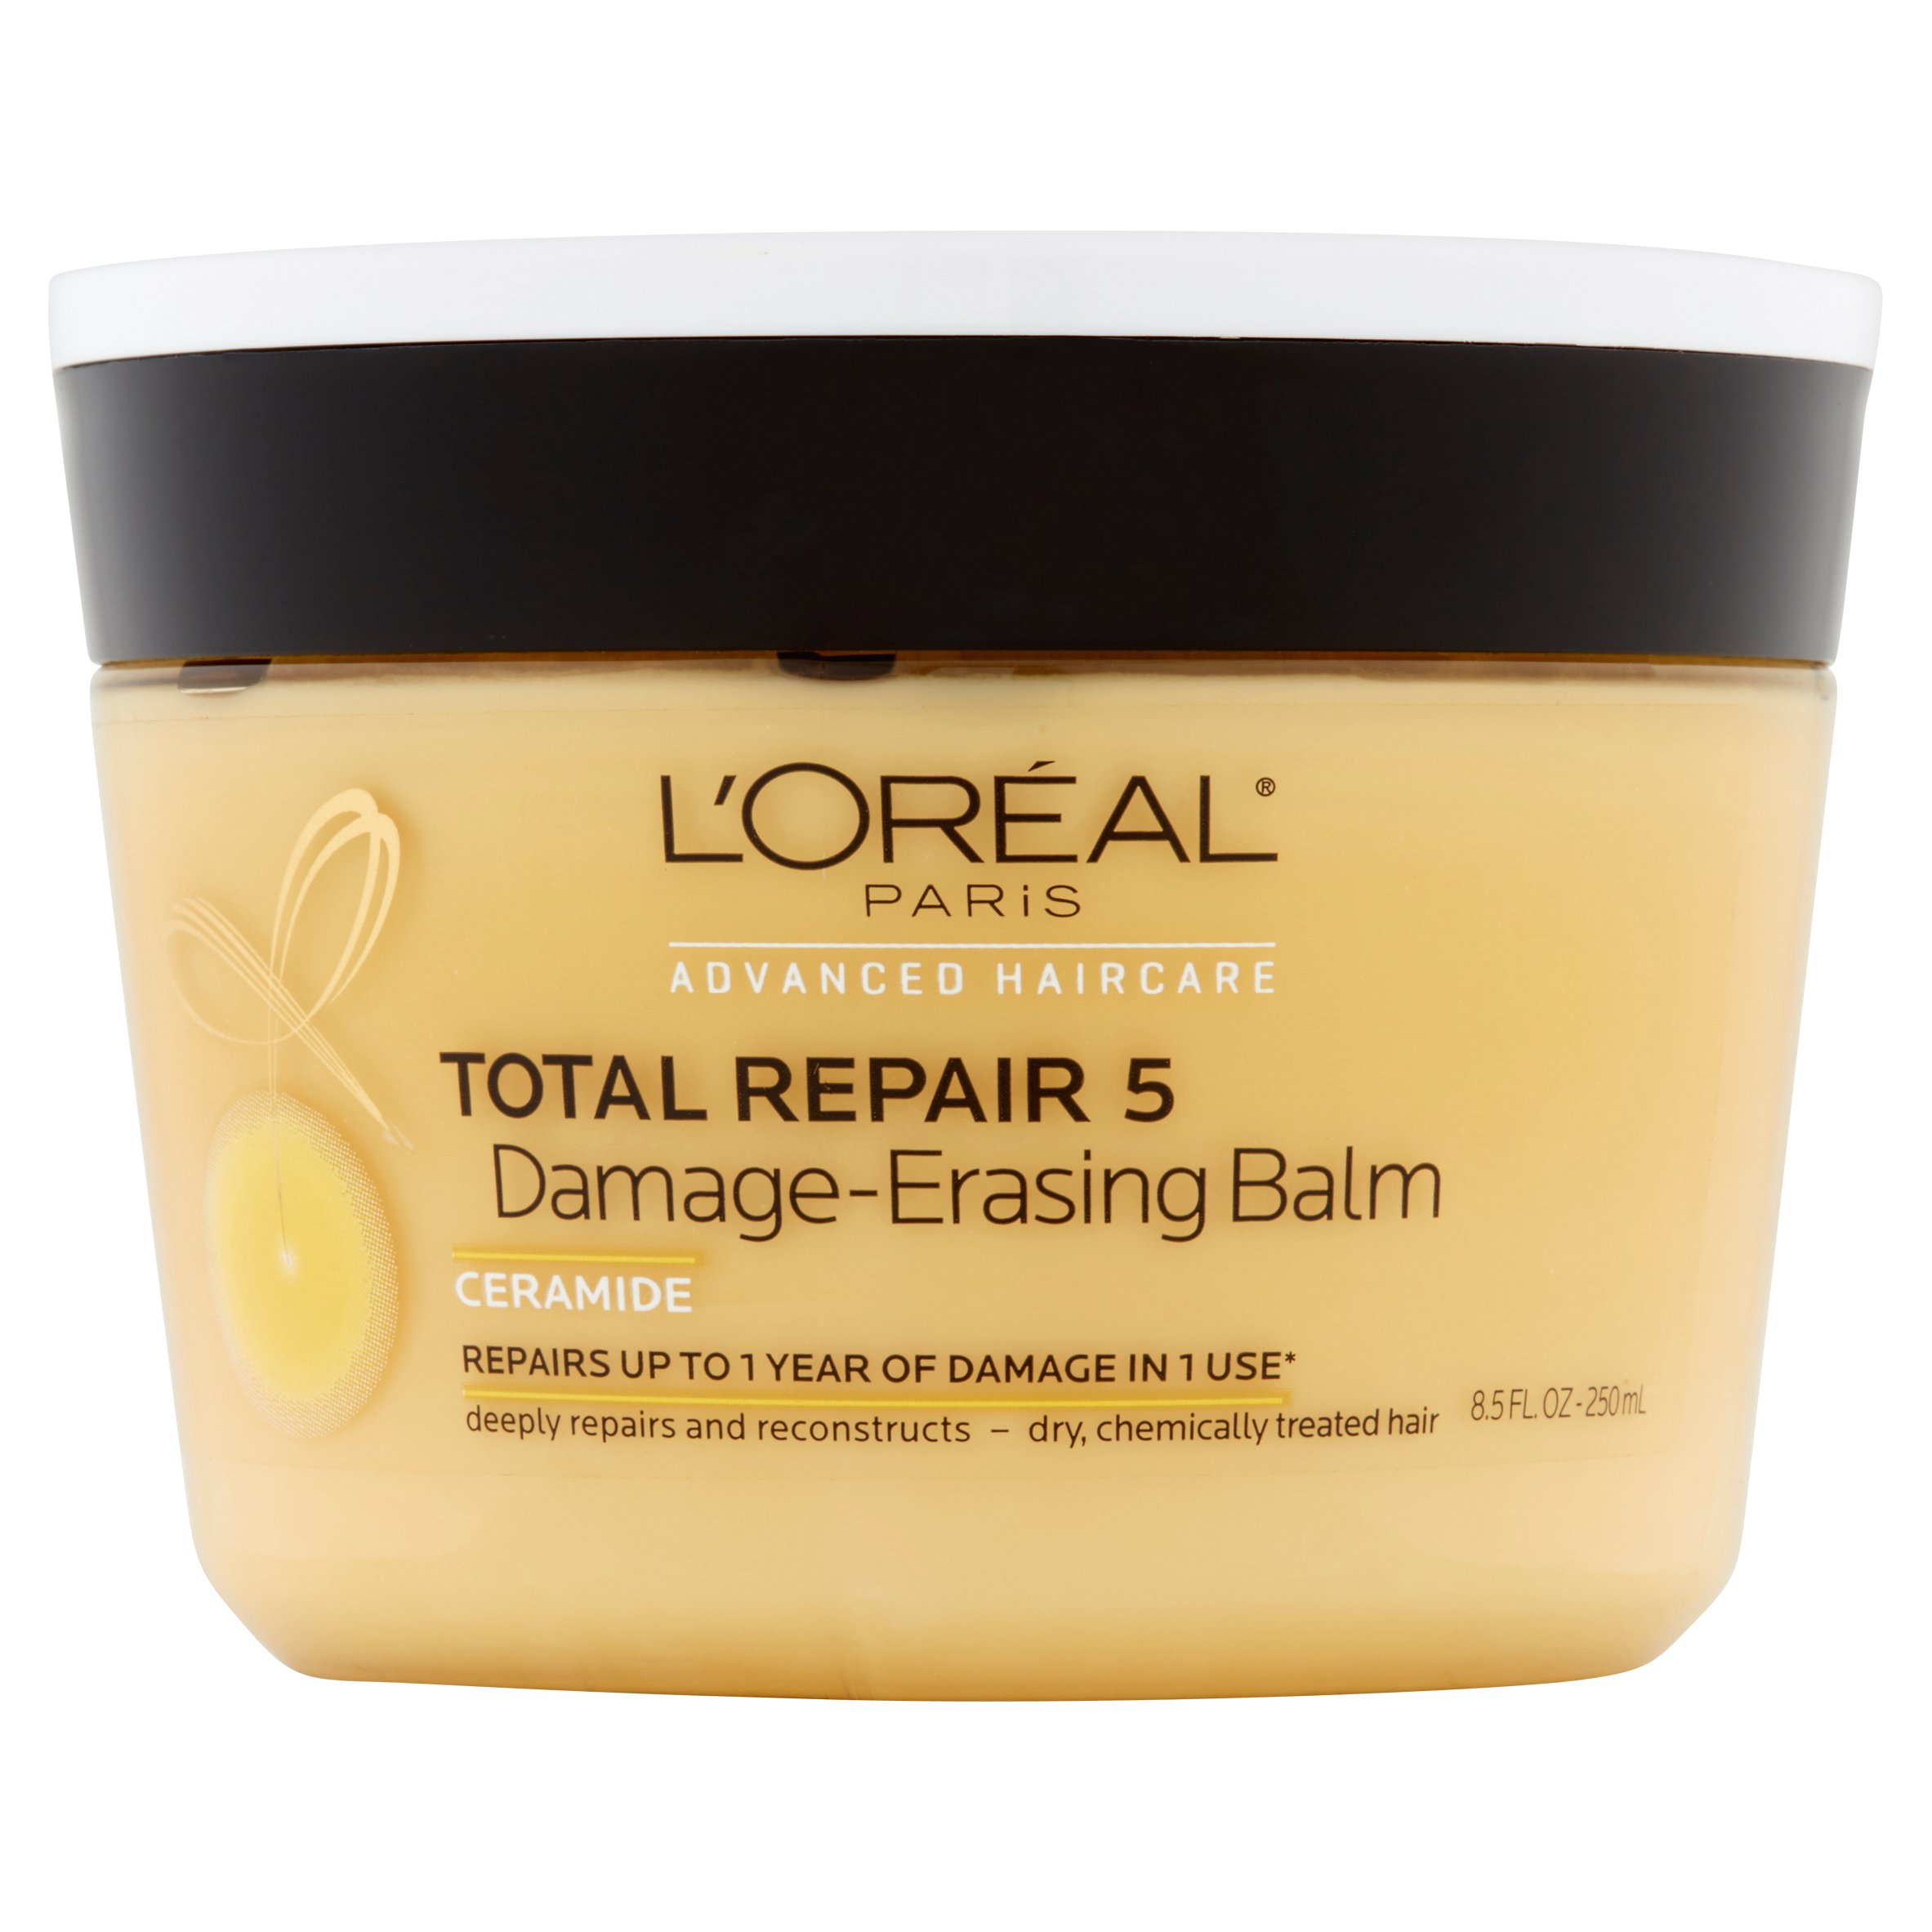 L'Oreal Paris Hair Expert Total Repair 5 Damage-Erasing Balm 8.5 FL OZ